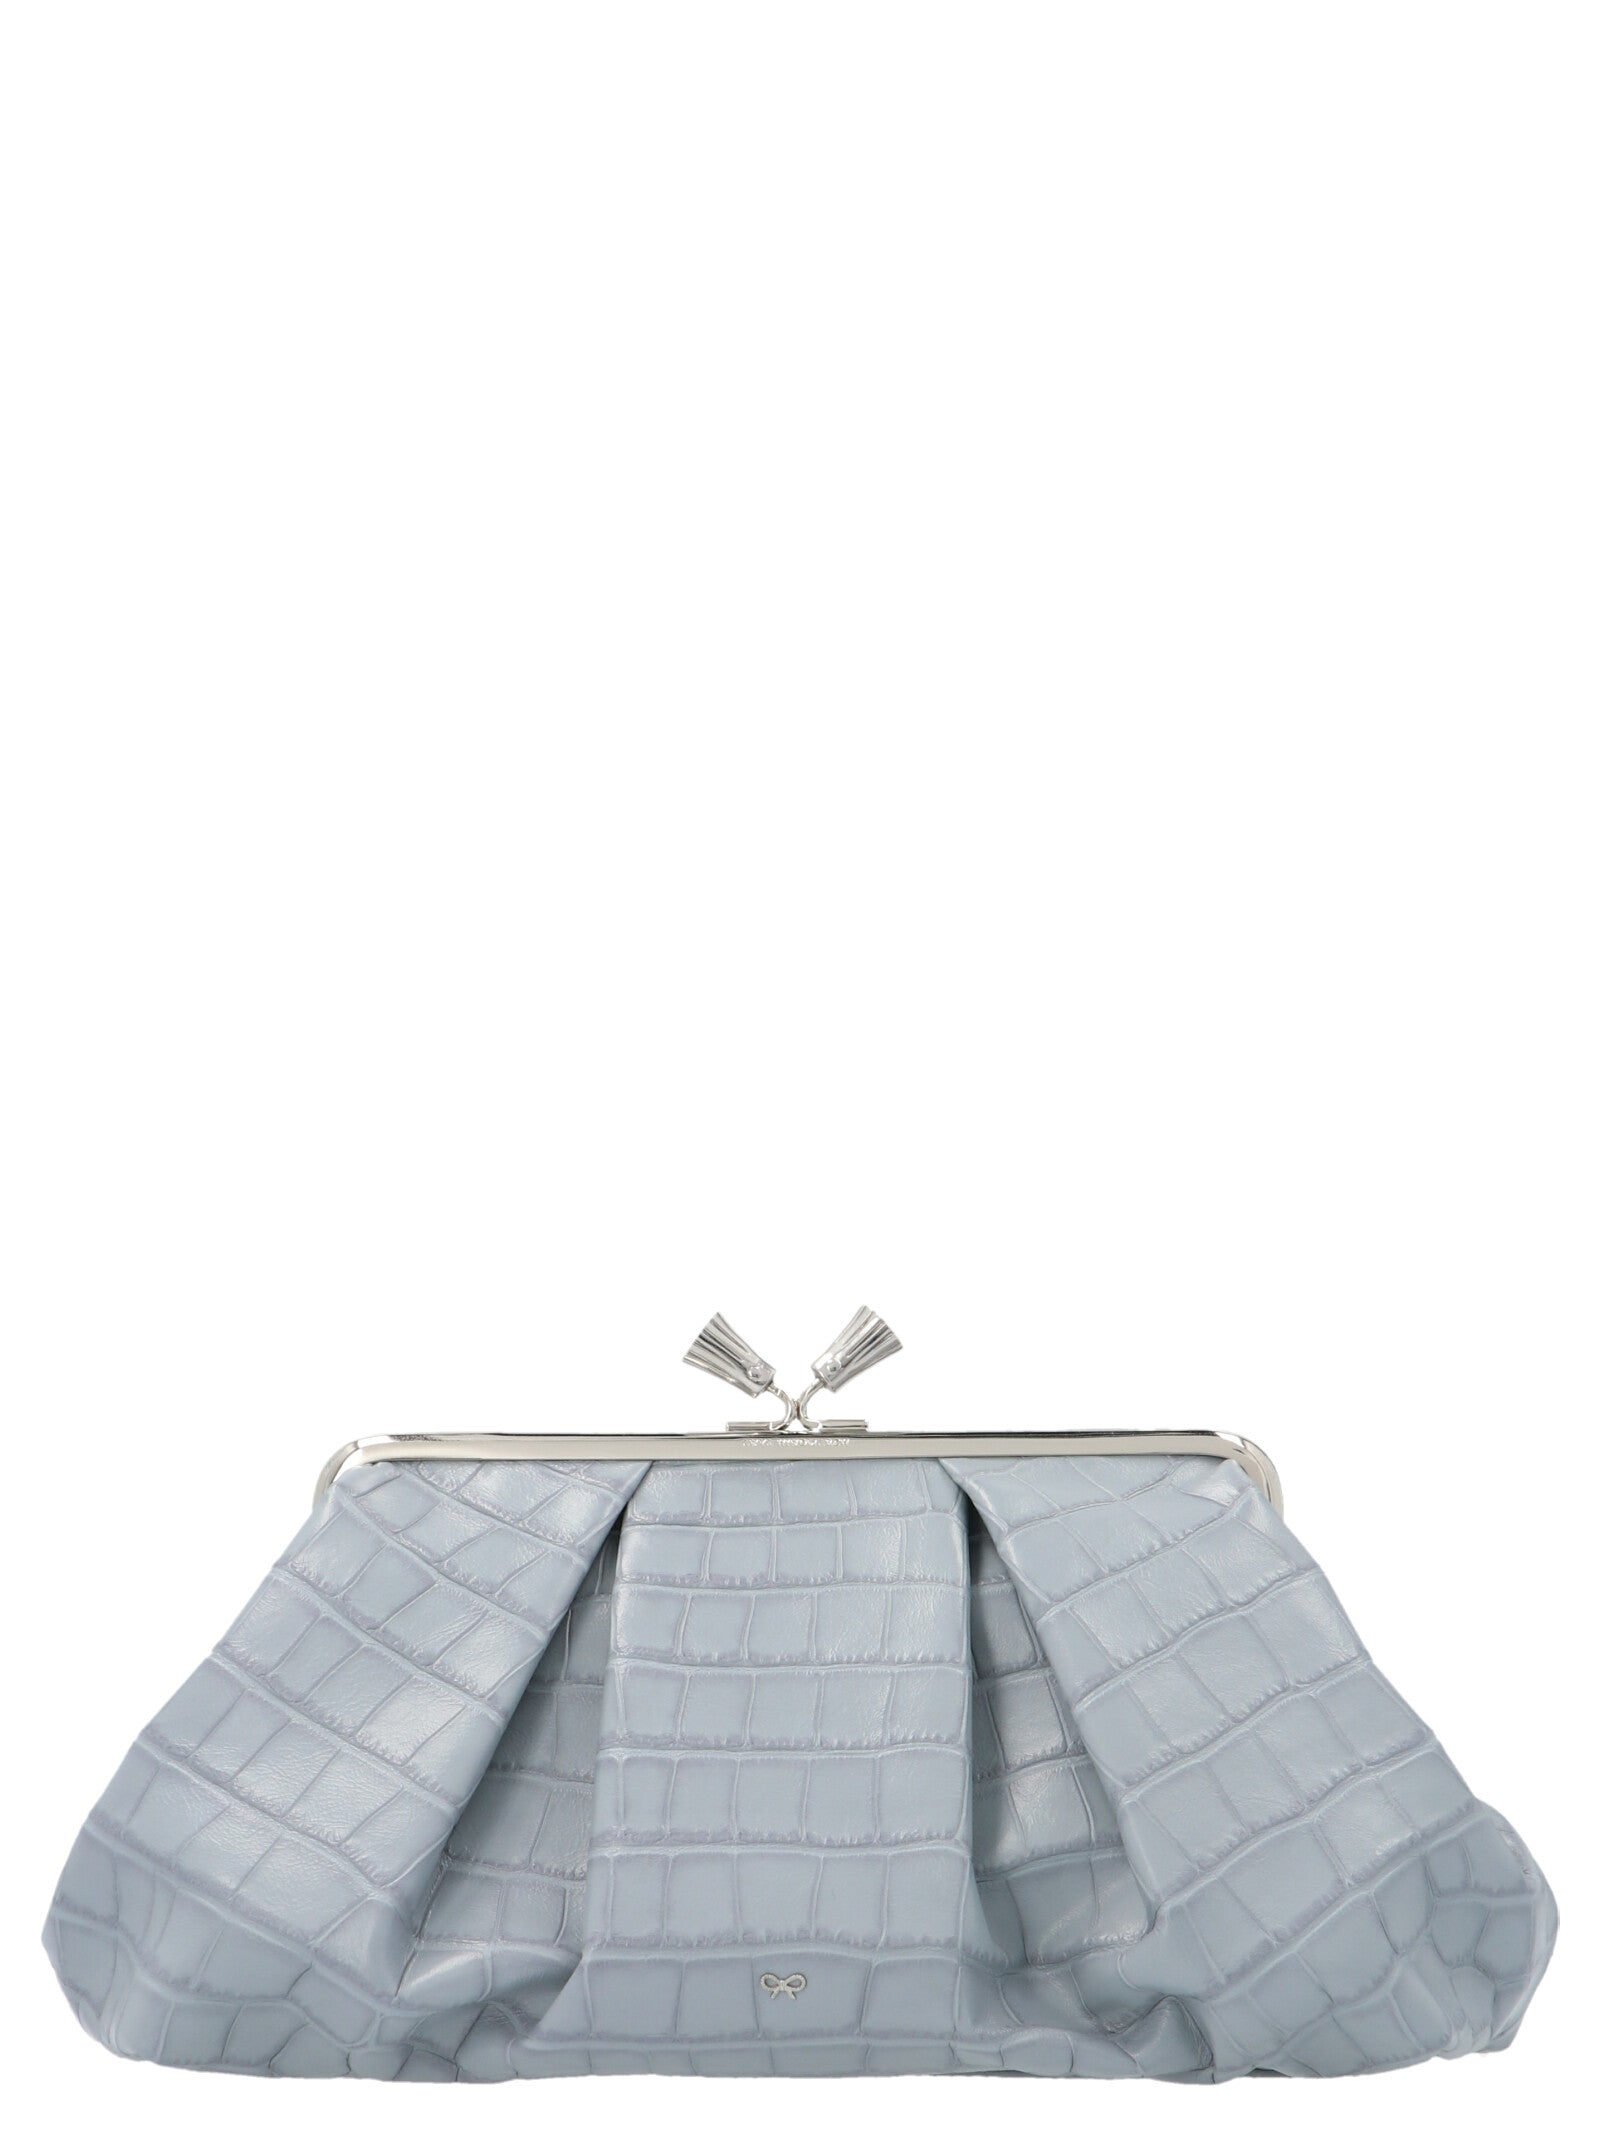 Anya Hindmarch ANYA HINDMARCH LARGE MAUD TASSEL CLUTCH BAG